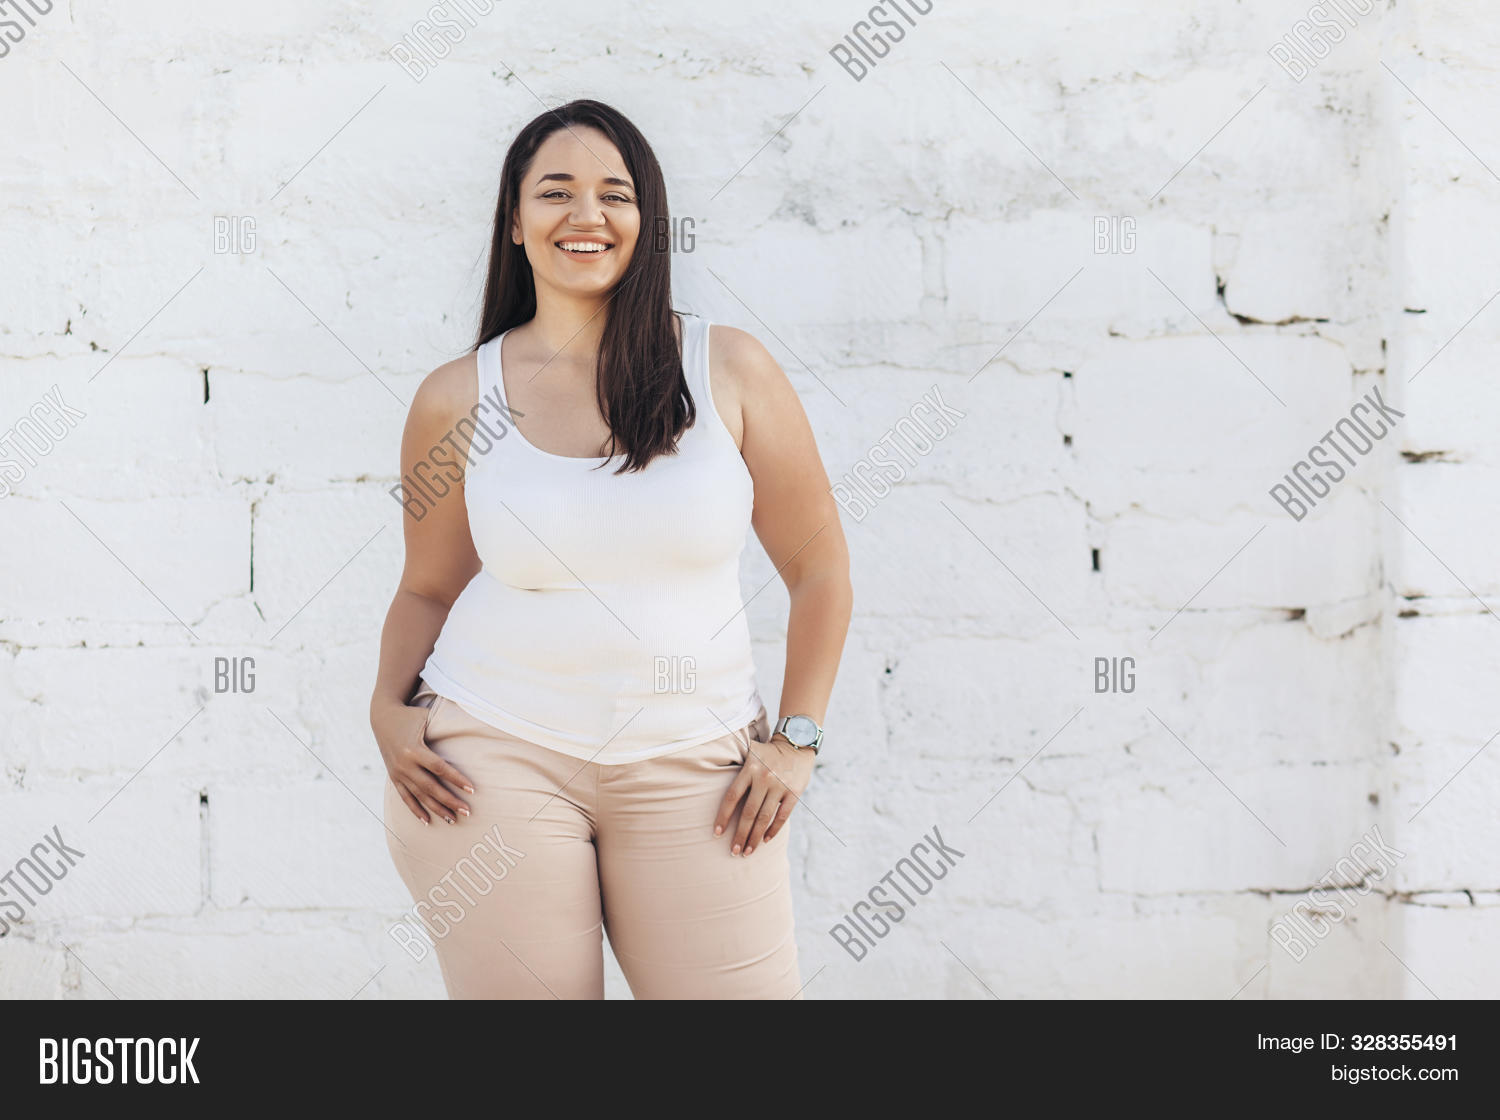 background,beautiful,beauty,blank,body,caucasian,chubby,clothing,curvy,cute,fashion,fat,female,figure,girl,happy,model,overweight,plus,positive,pretty,shirt,simple,size,standing,white,woman,young